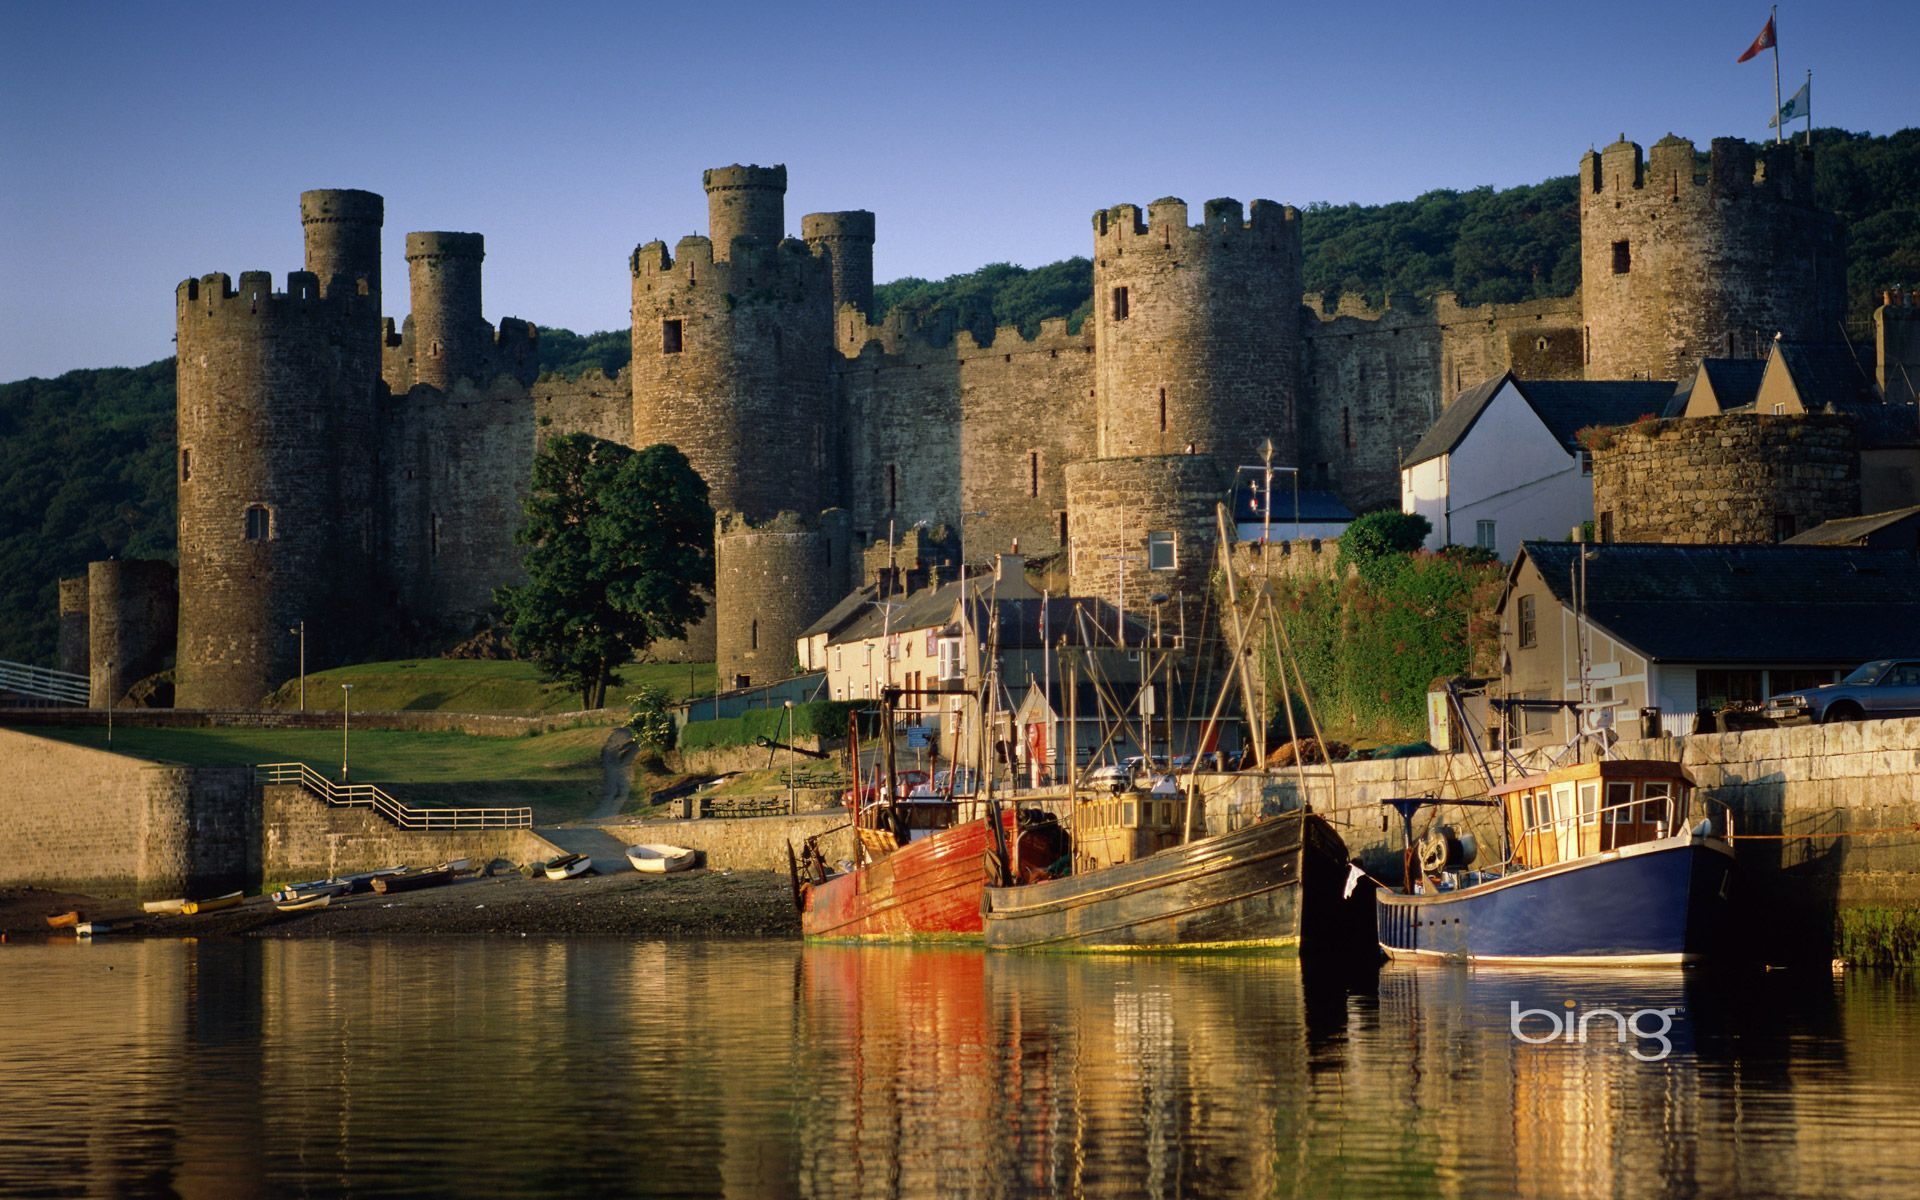 bing image collection windows bing conwy castle wallpaper ace